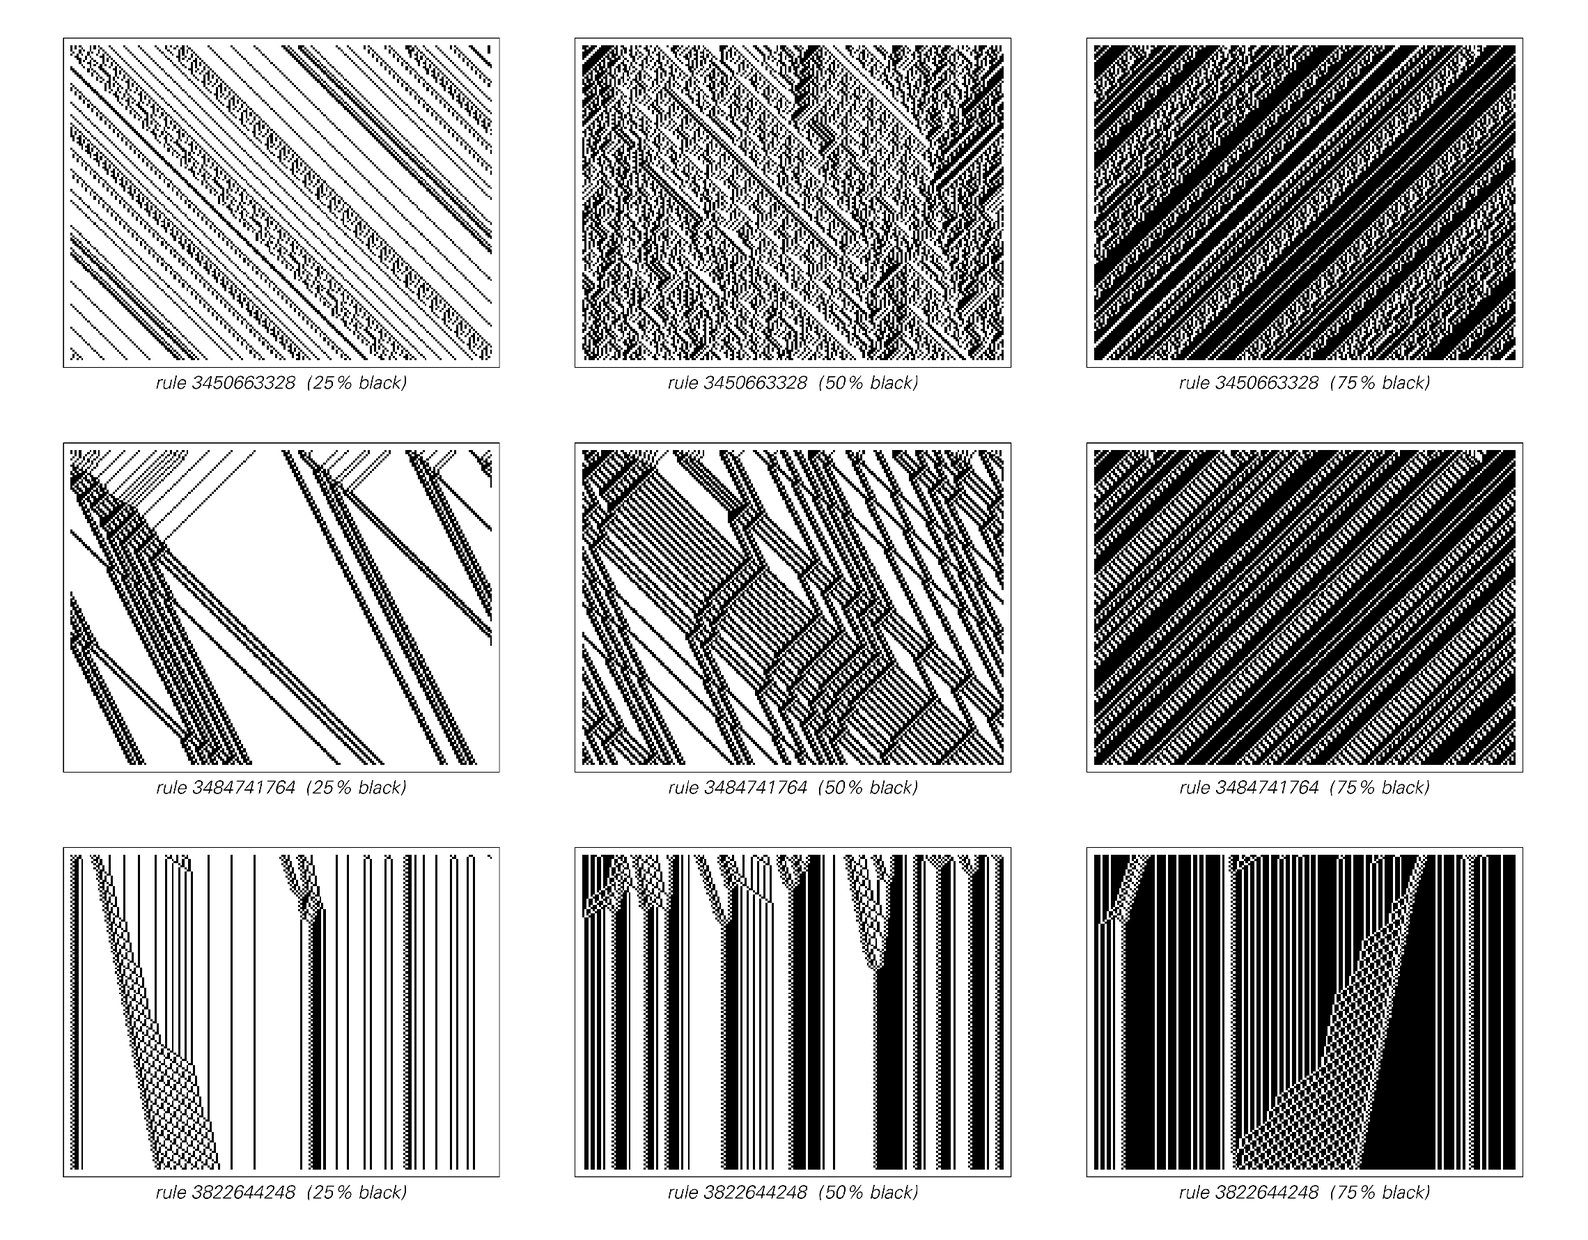 Examples of cellular automata with next-nearest-neighbor rules